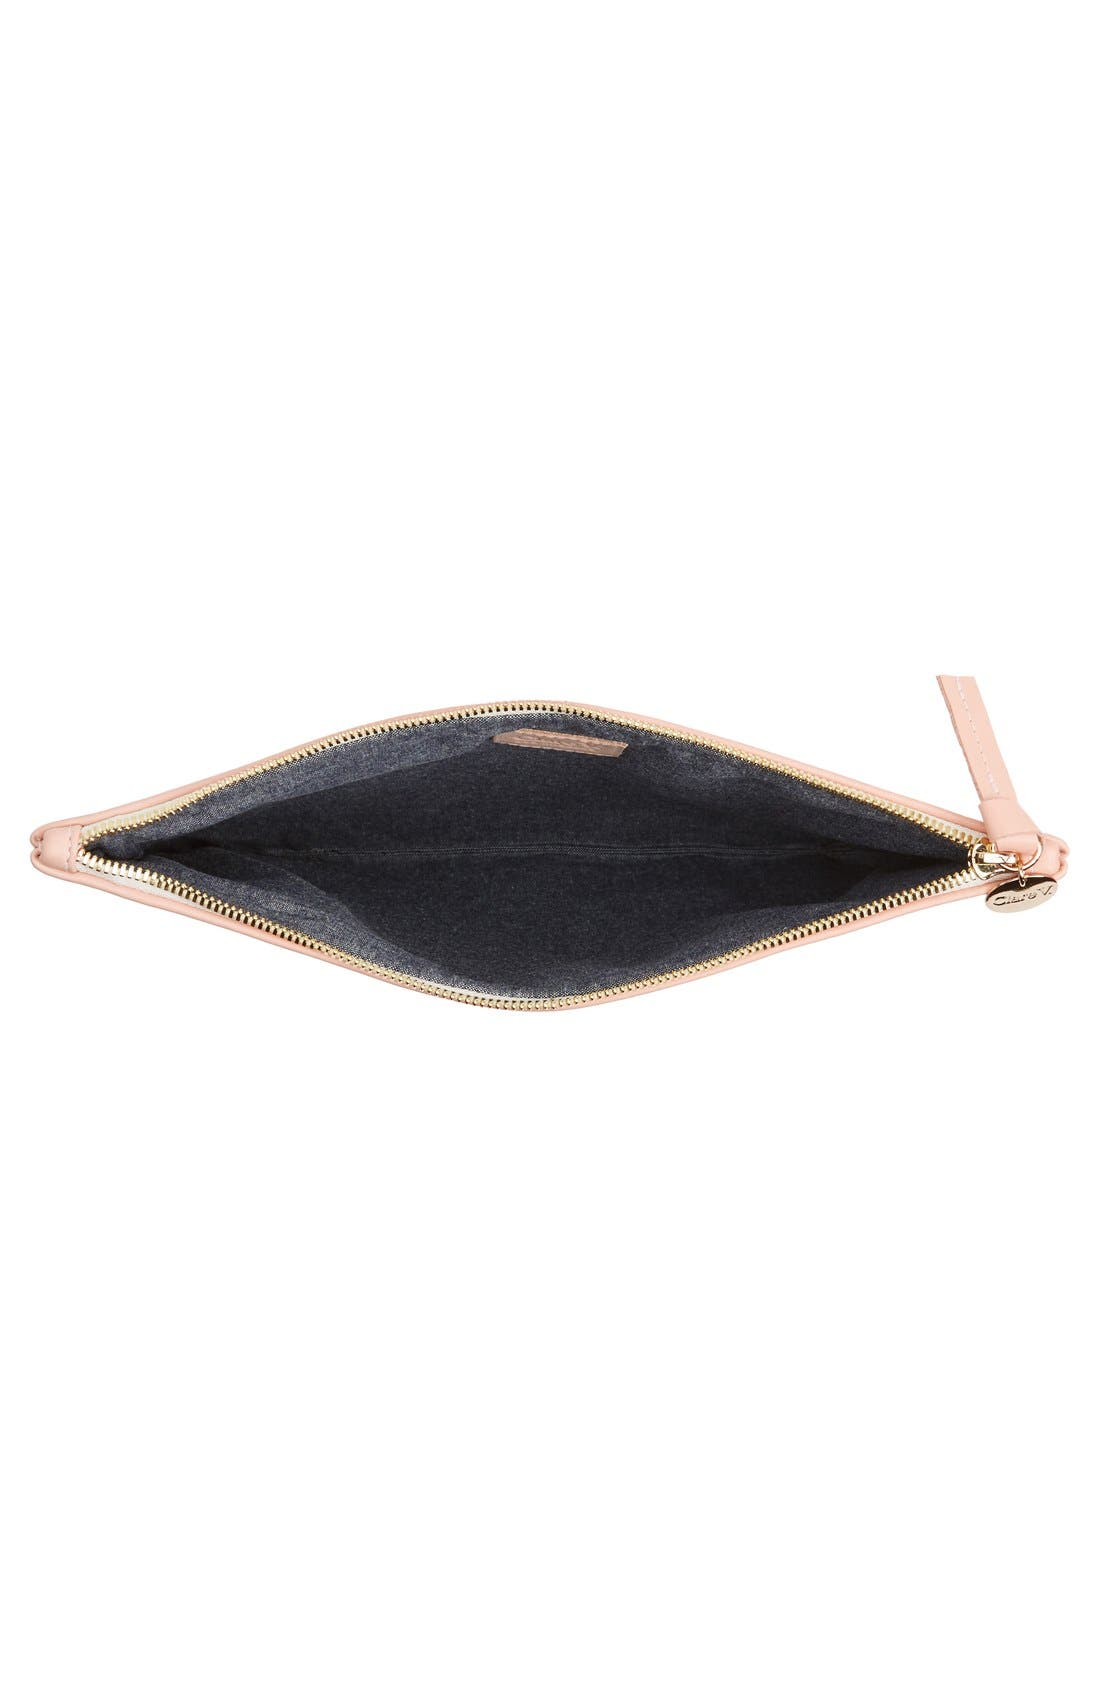 Alternate Image 3  - Clare V. 'Eyes' Printed Nappa Leather Clutch